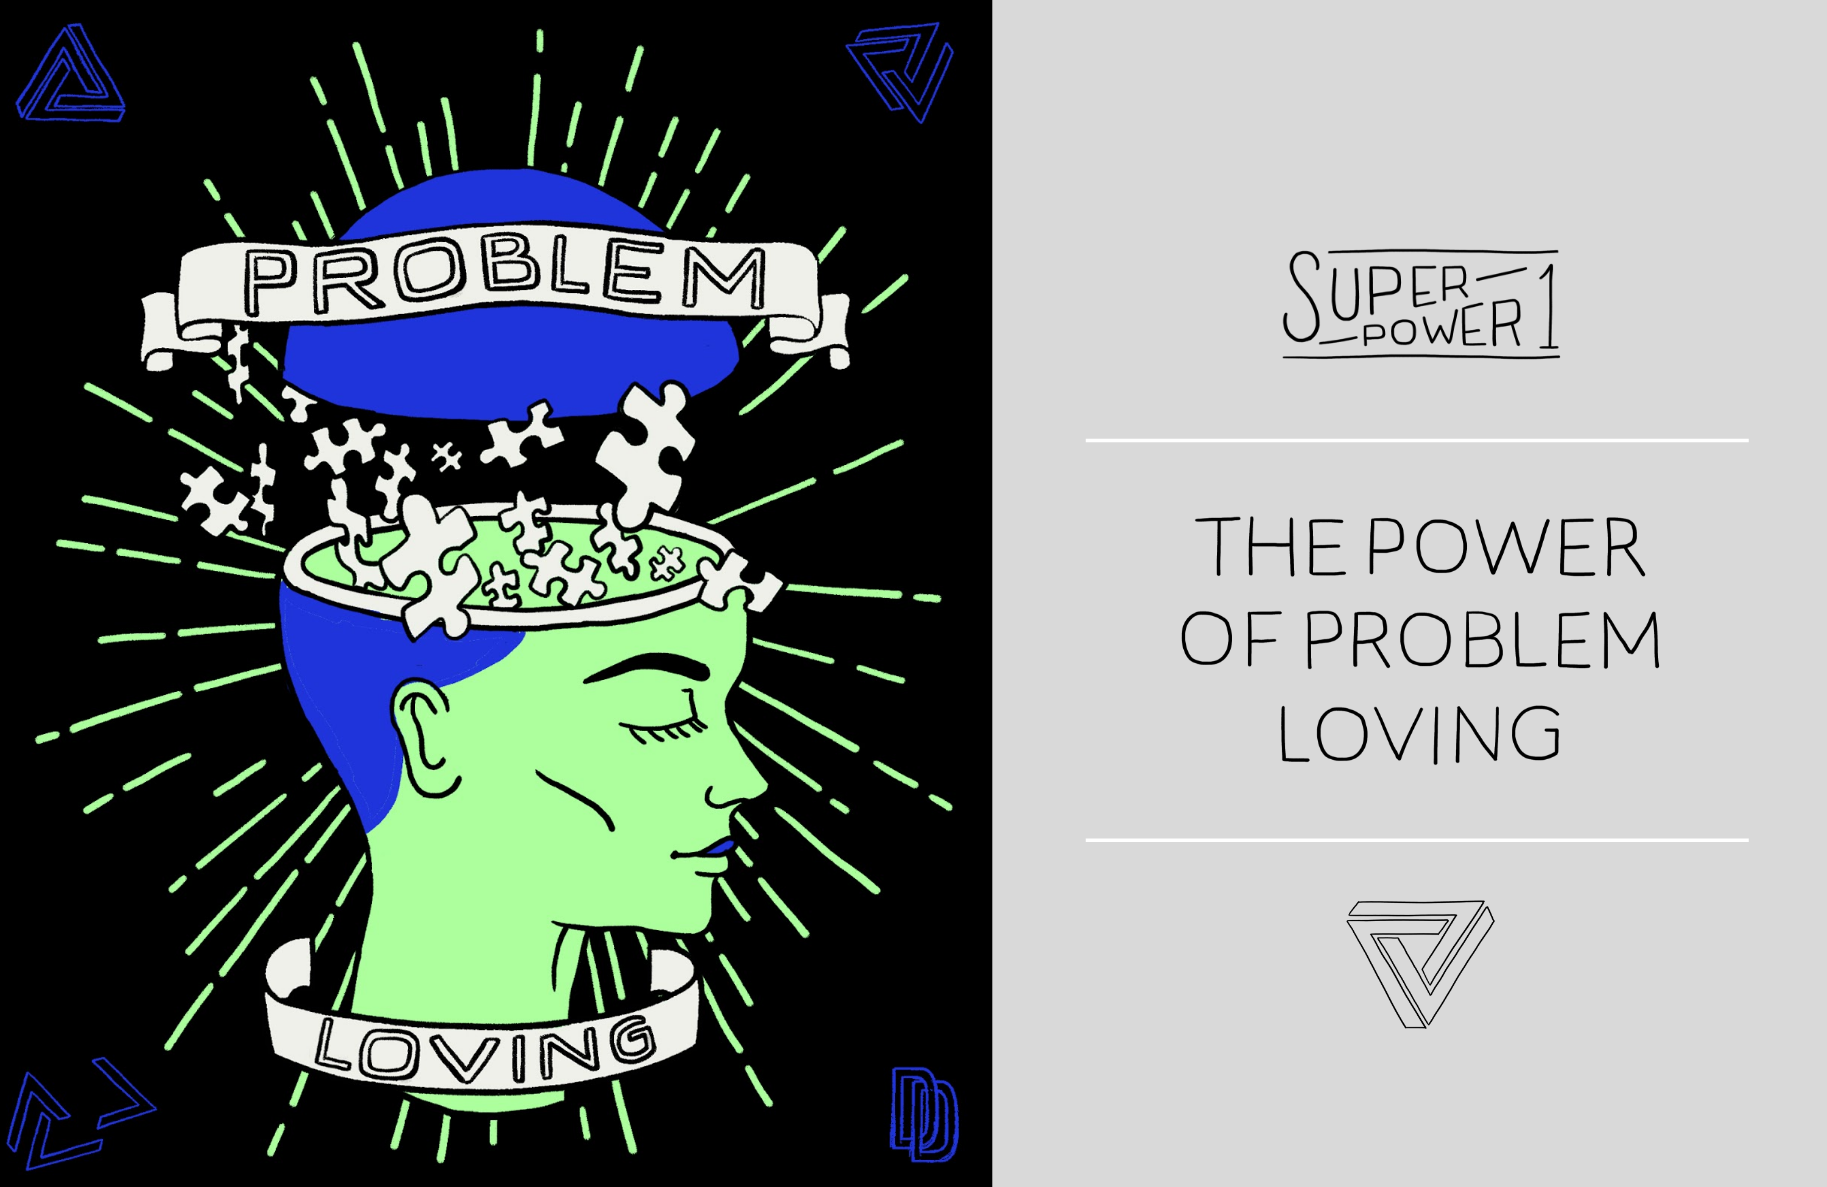 free supowerpowers for creative rebels and change agents